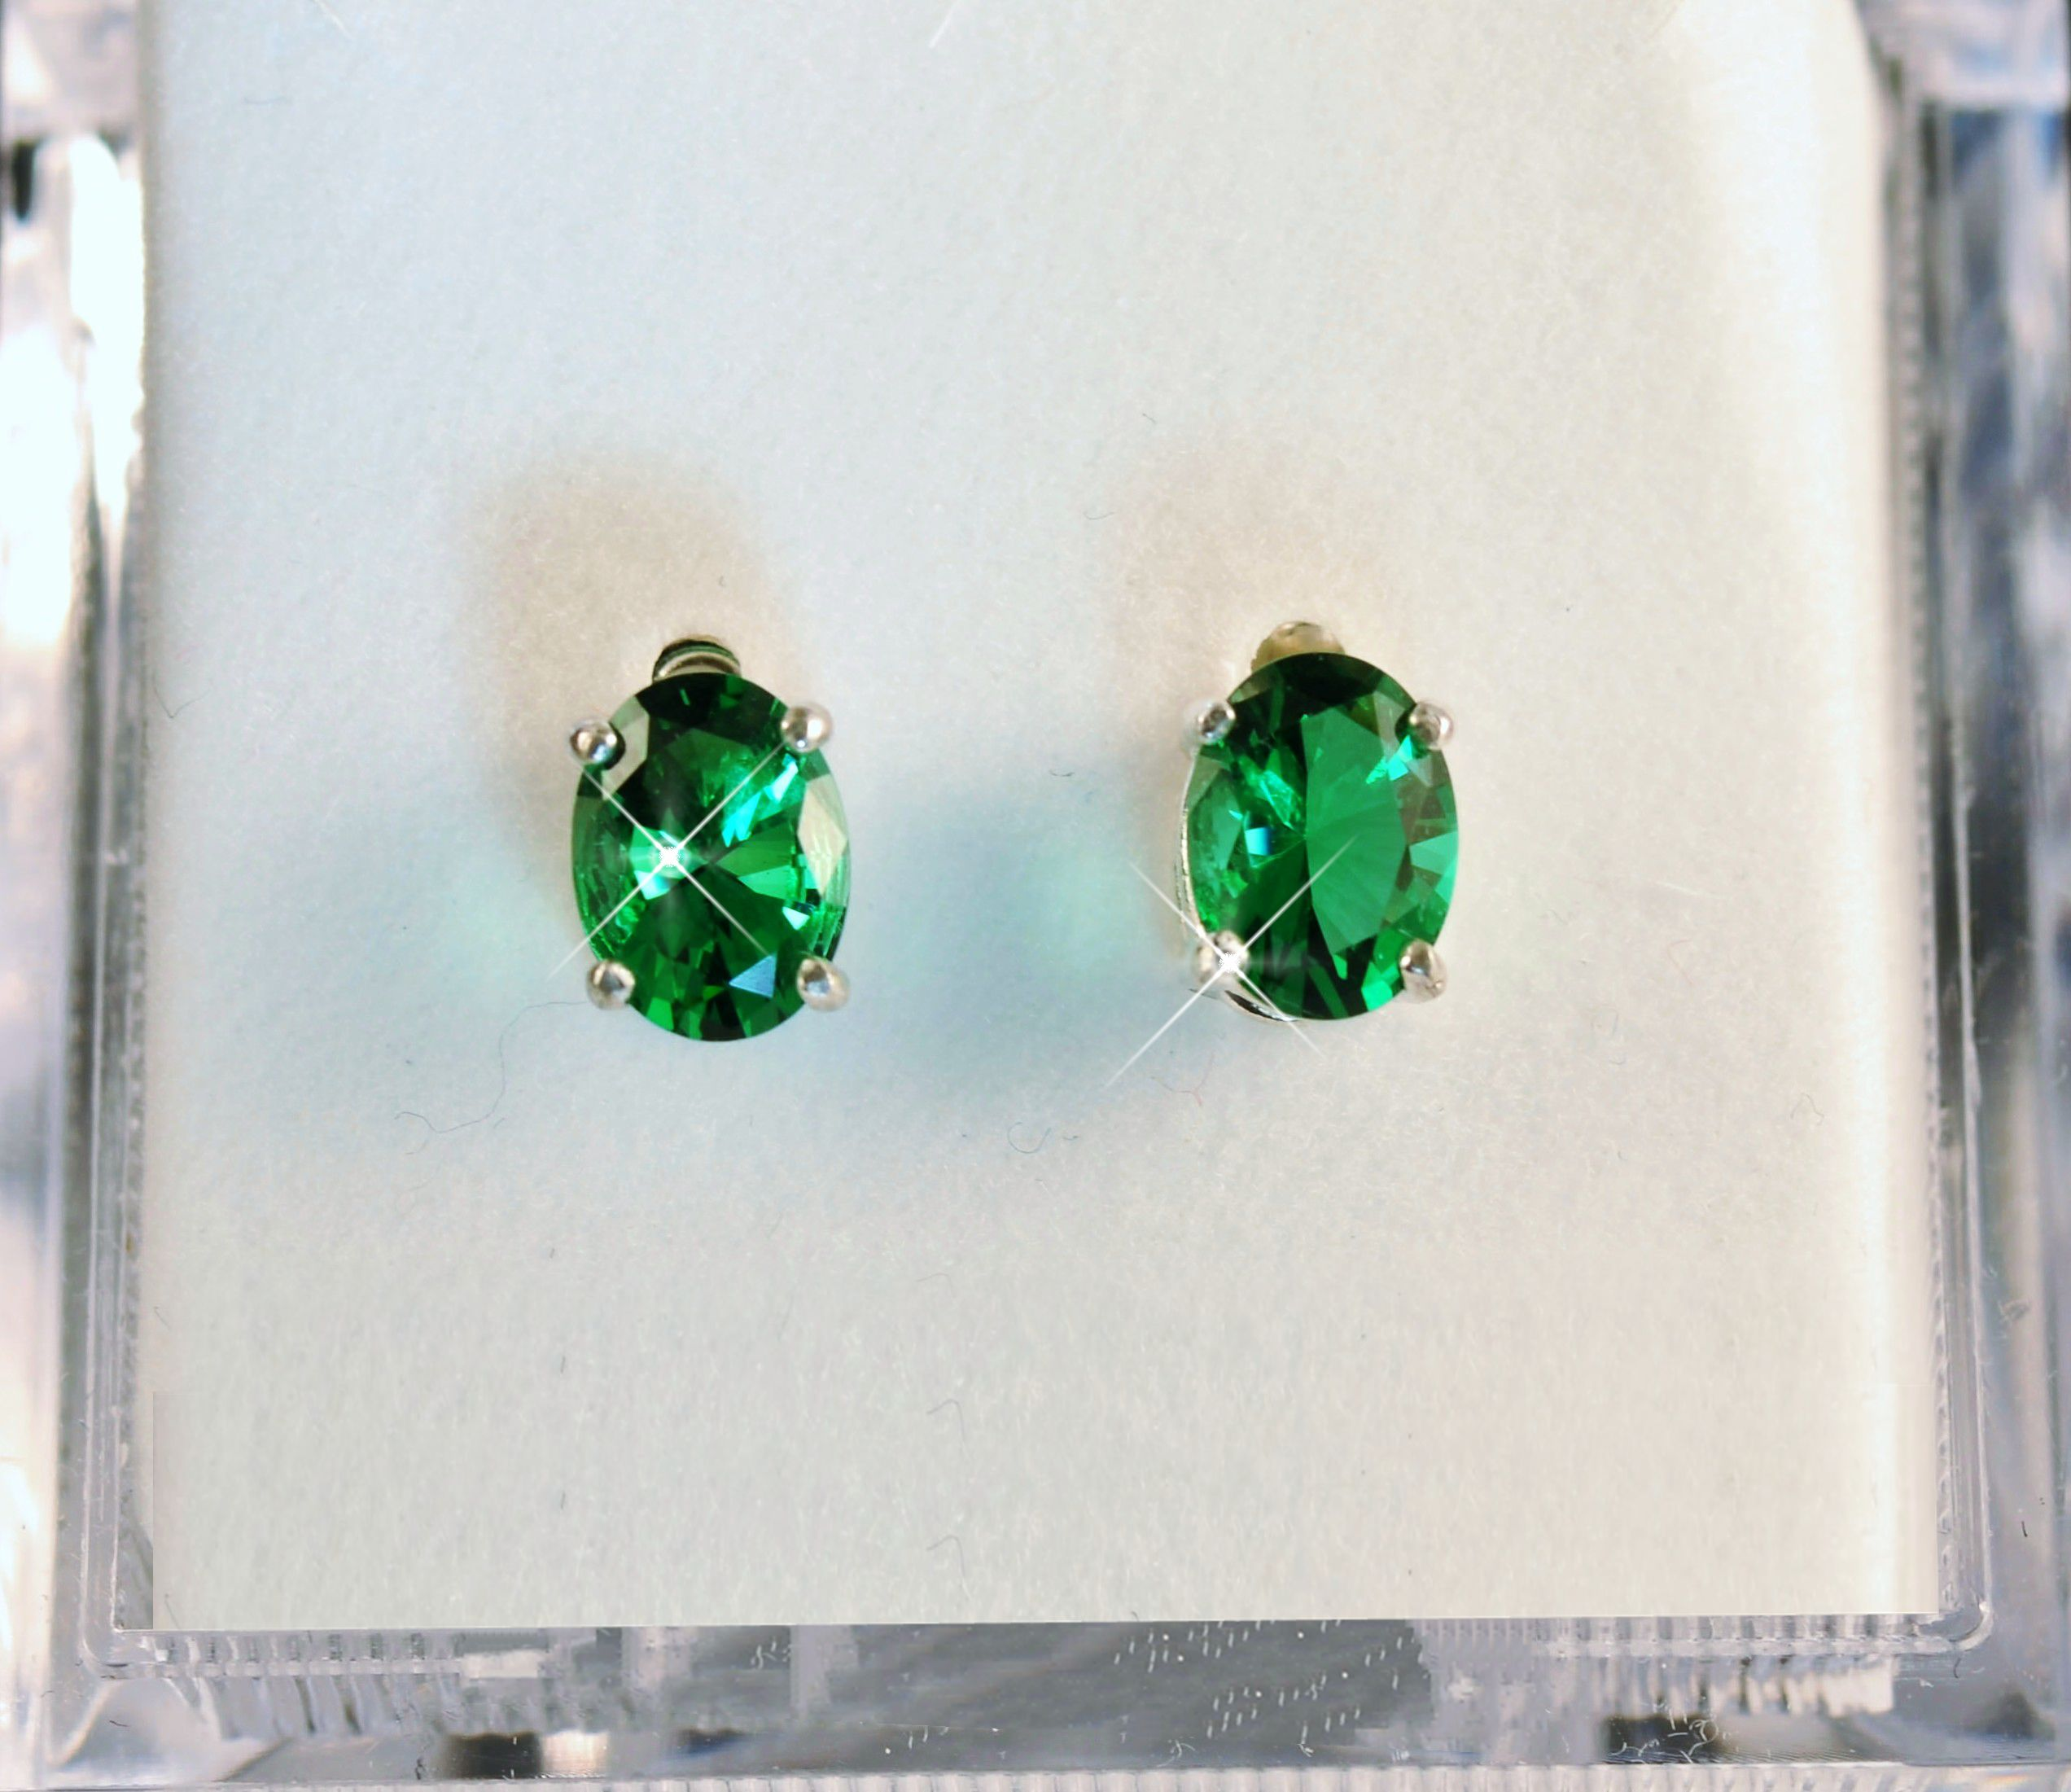 silver earrings finish addition latest natural shop etsy emerald to pin diamond in the excited sterling my share cluster antique may